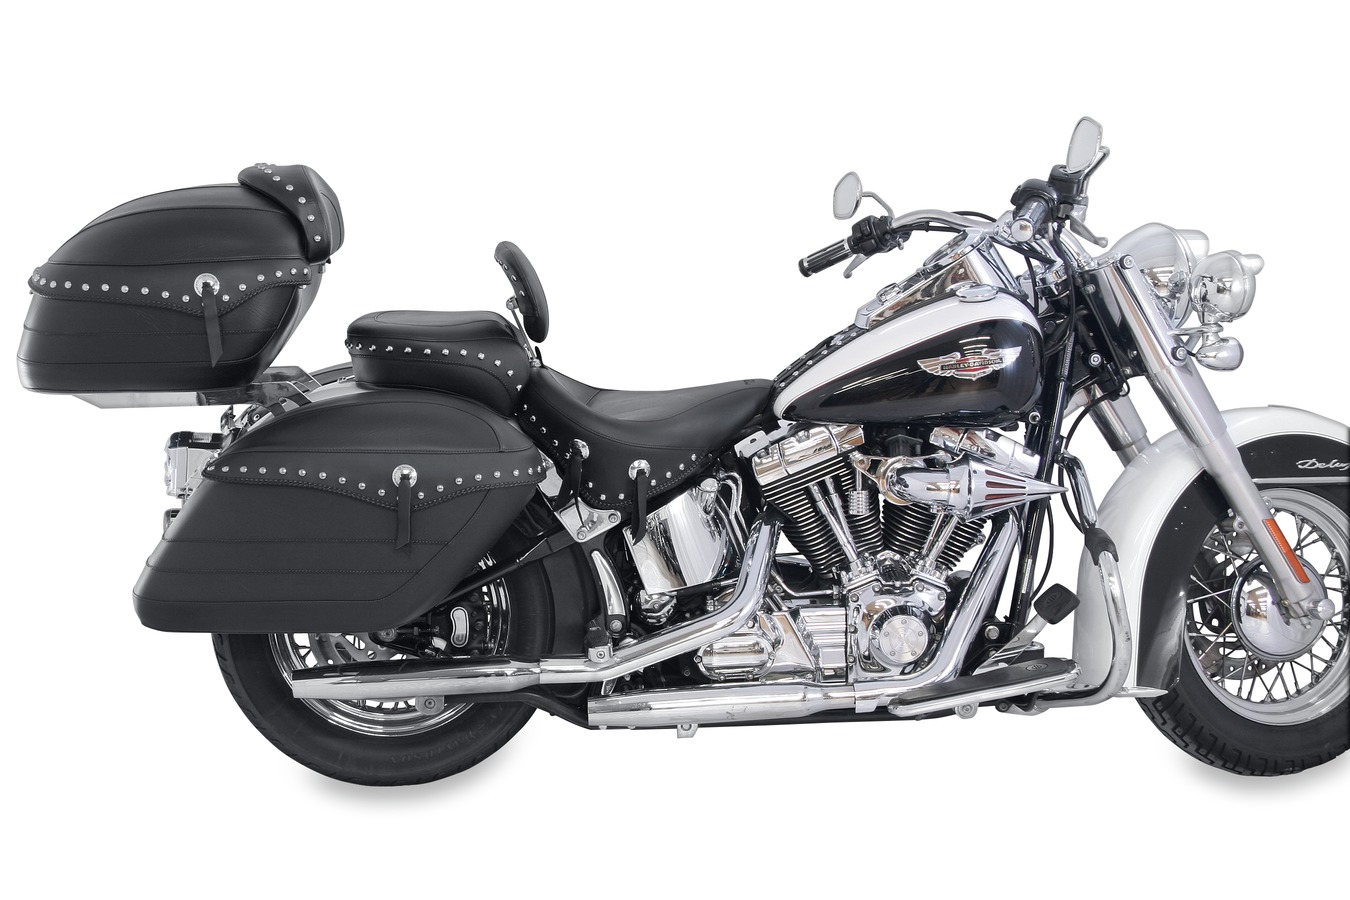 Wide Touring Solo Seat with Driver Backrest, Chrome Studded with Conchos, Black